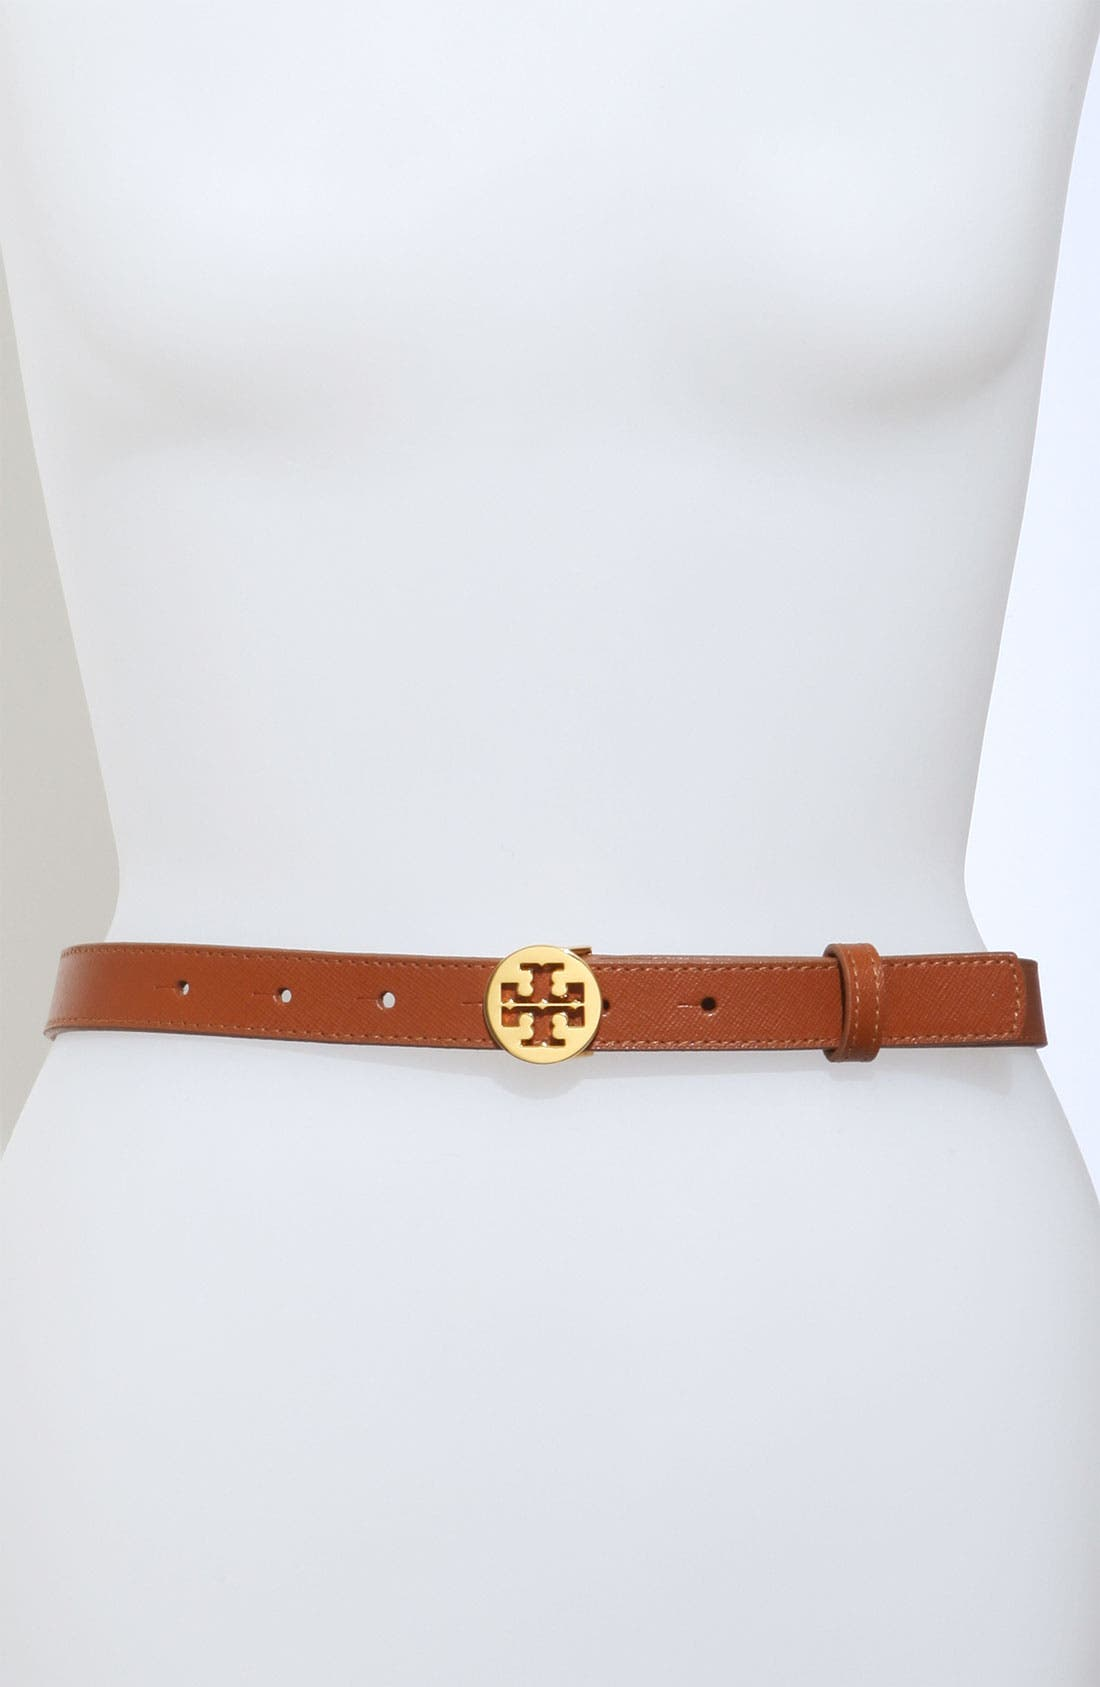 Alternate Image 1 Selected - Tory Burch 'Skinny Tory' Logo Belt